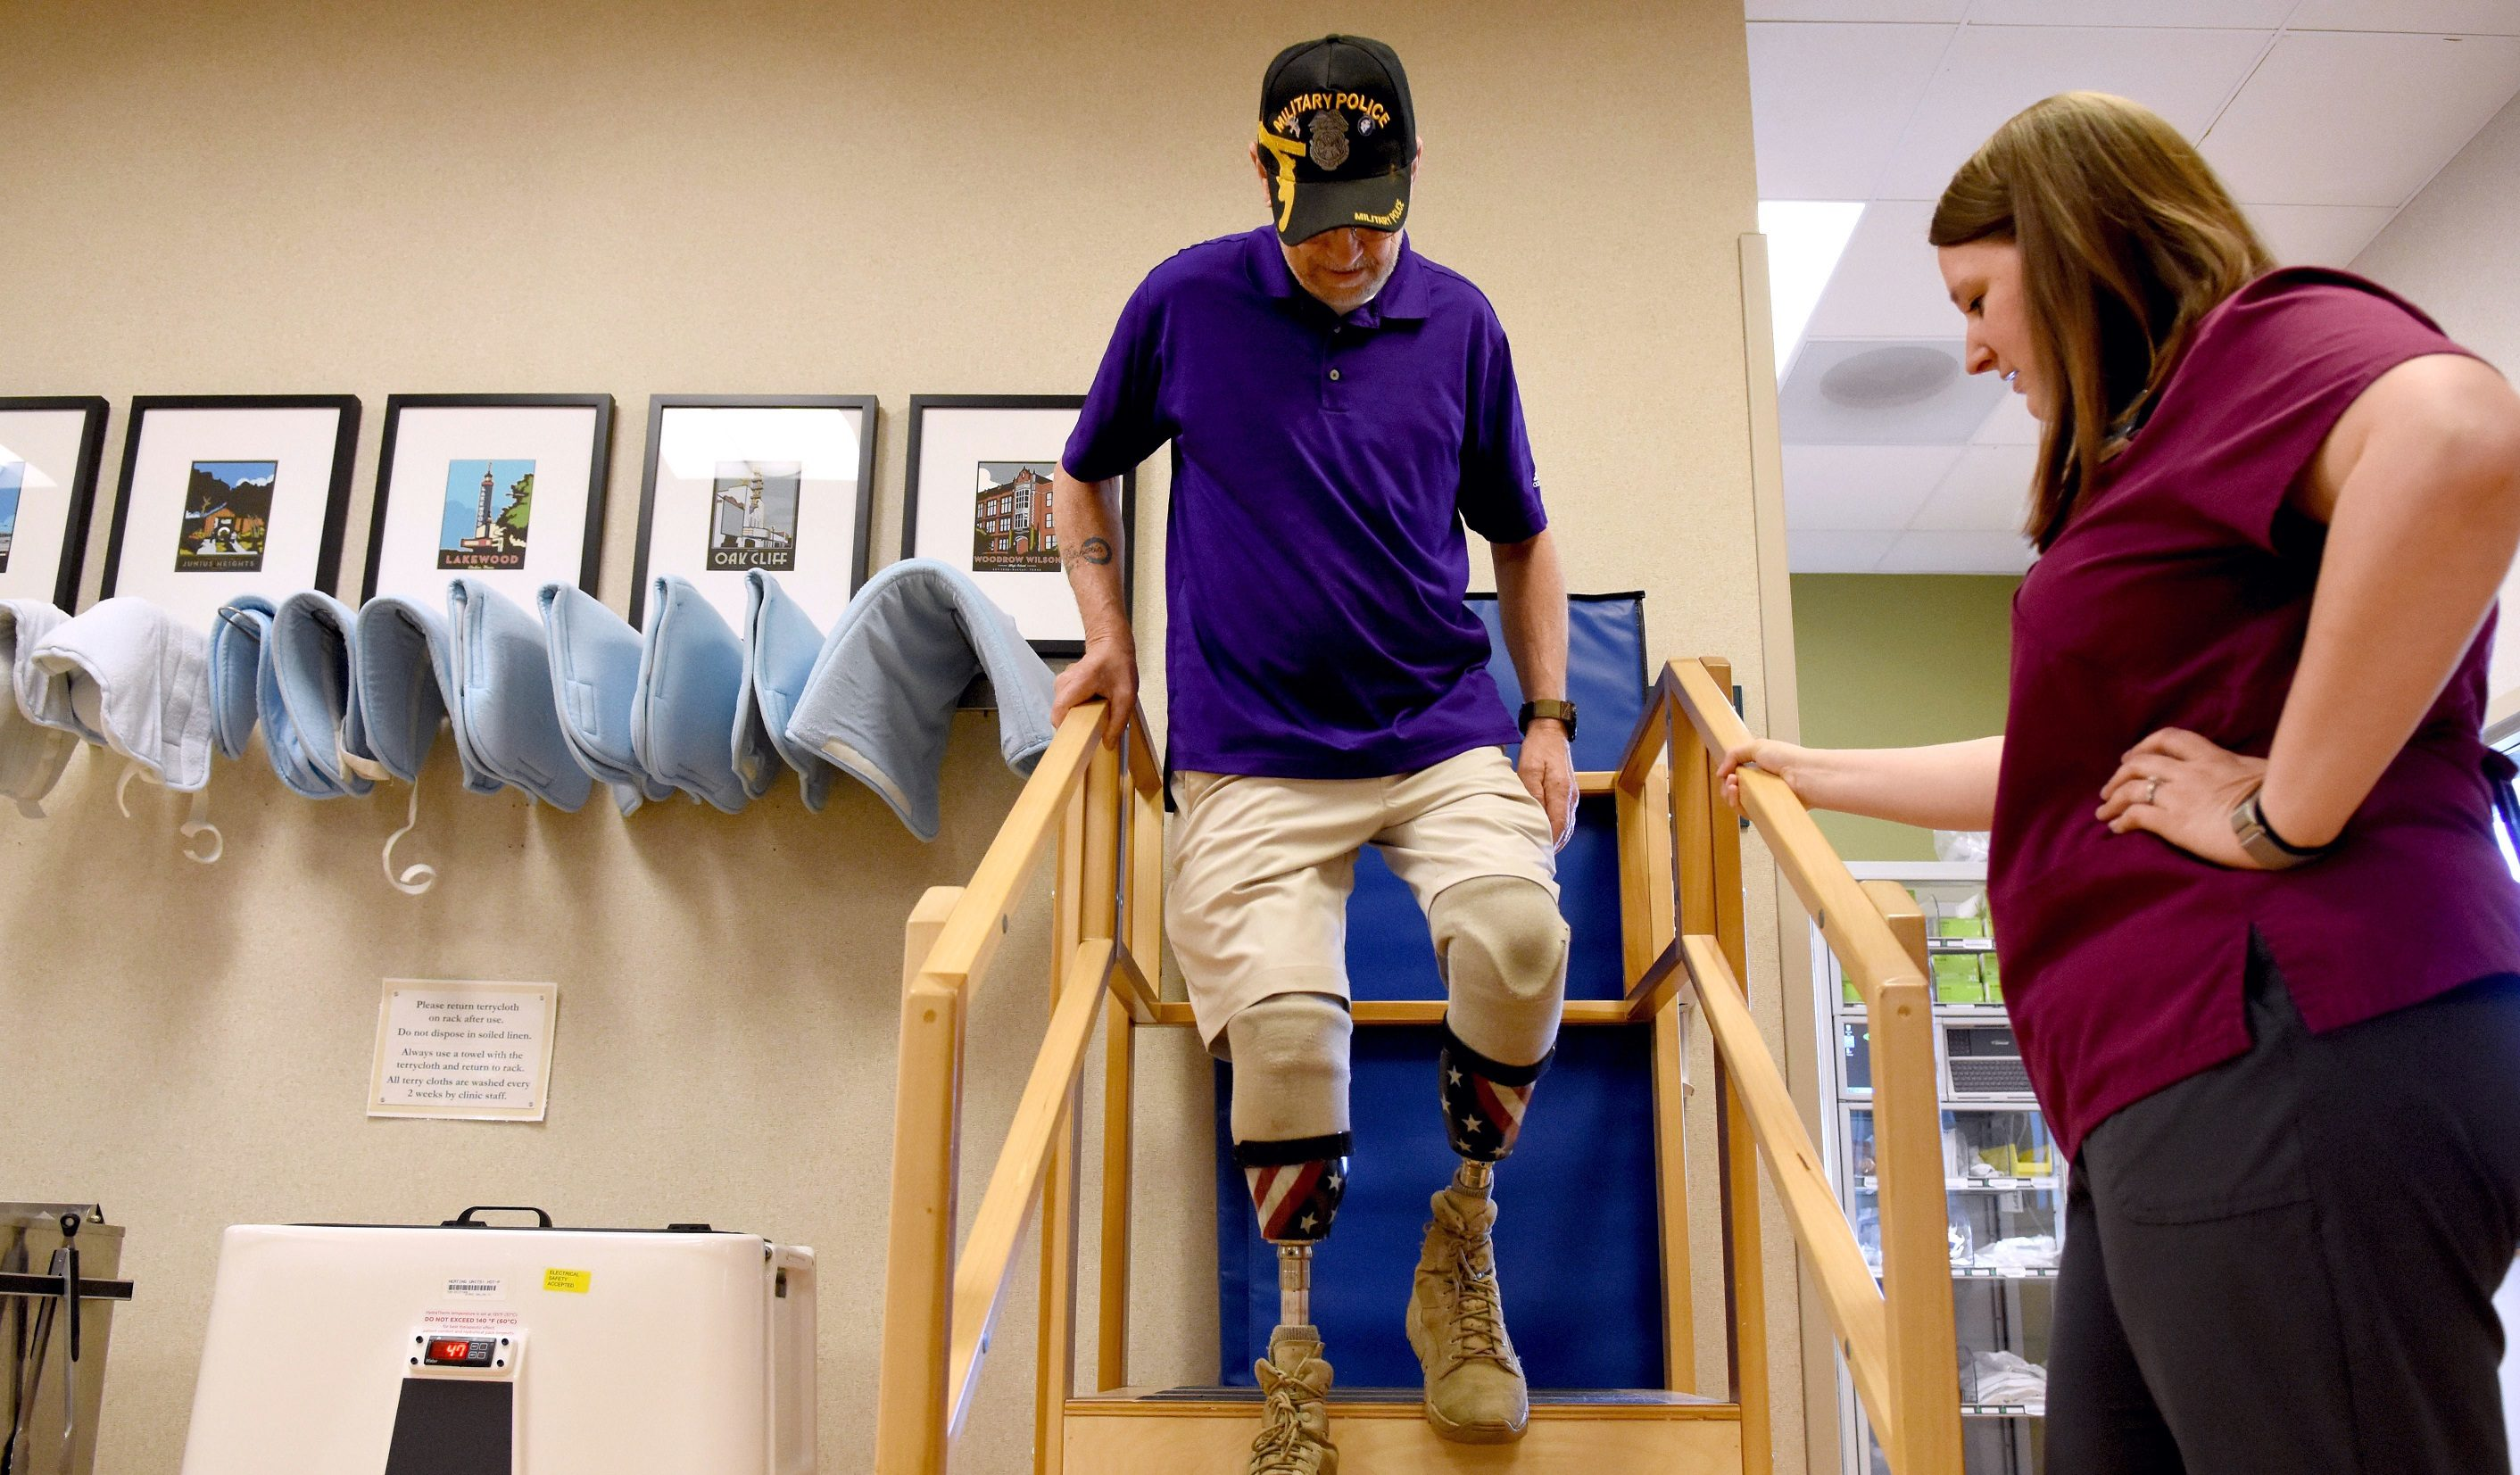 VA North Texas brings mobility, freedom to amputee Veterans